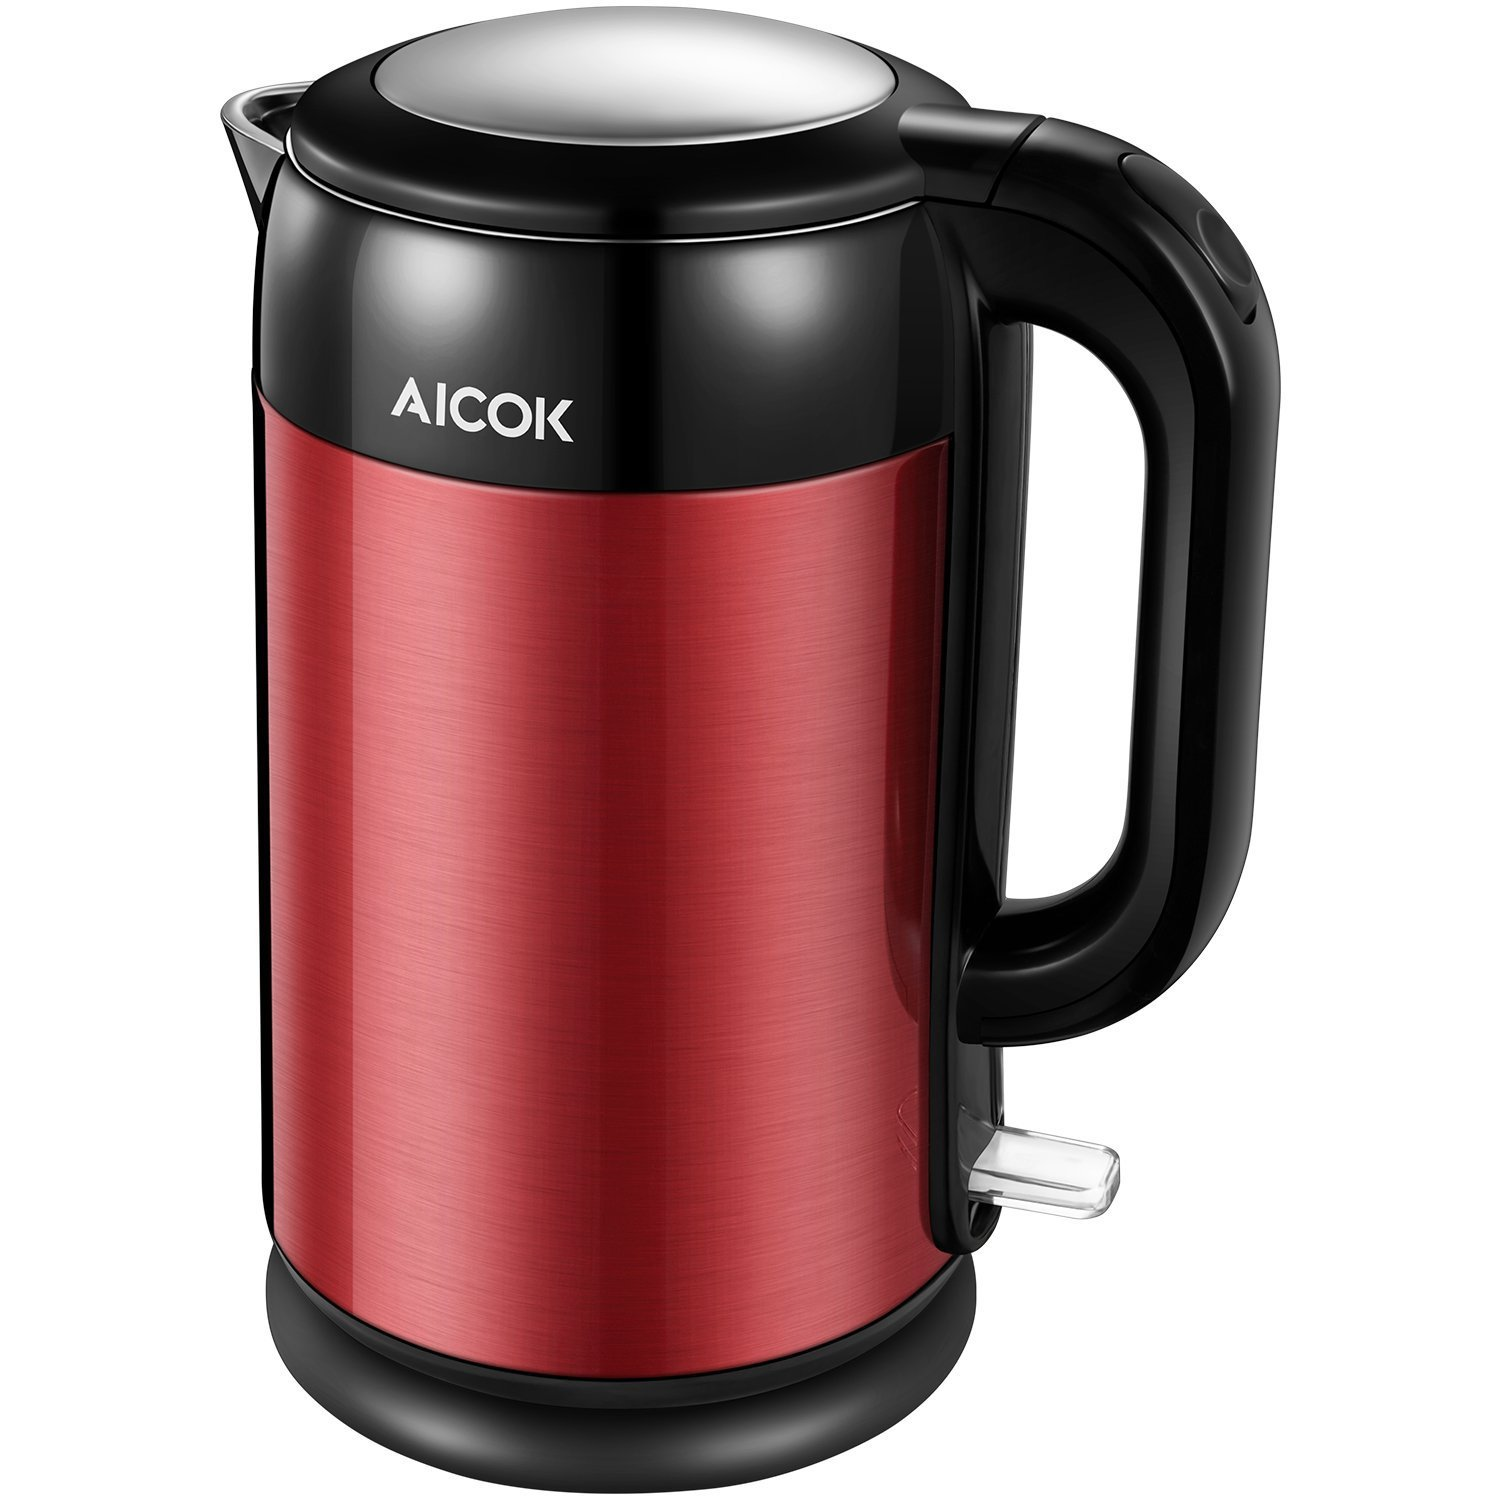 $31.99 (was $40.98) Aicok Electric Kettle Stainless Steel Double Wall Cool Touch Cordless Water Boiler, 1.7L Tea Kettle with 1500W Fast Heatup, Red